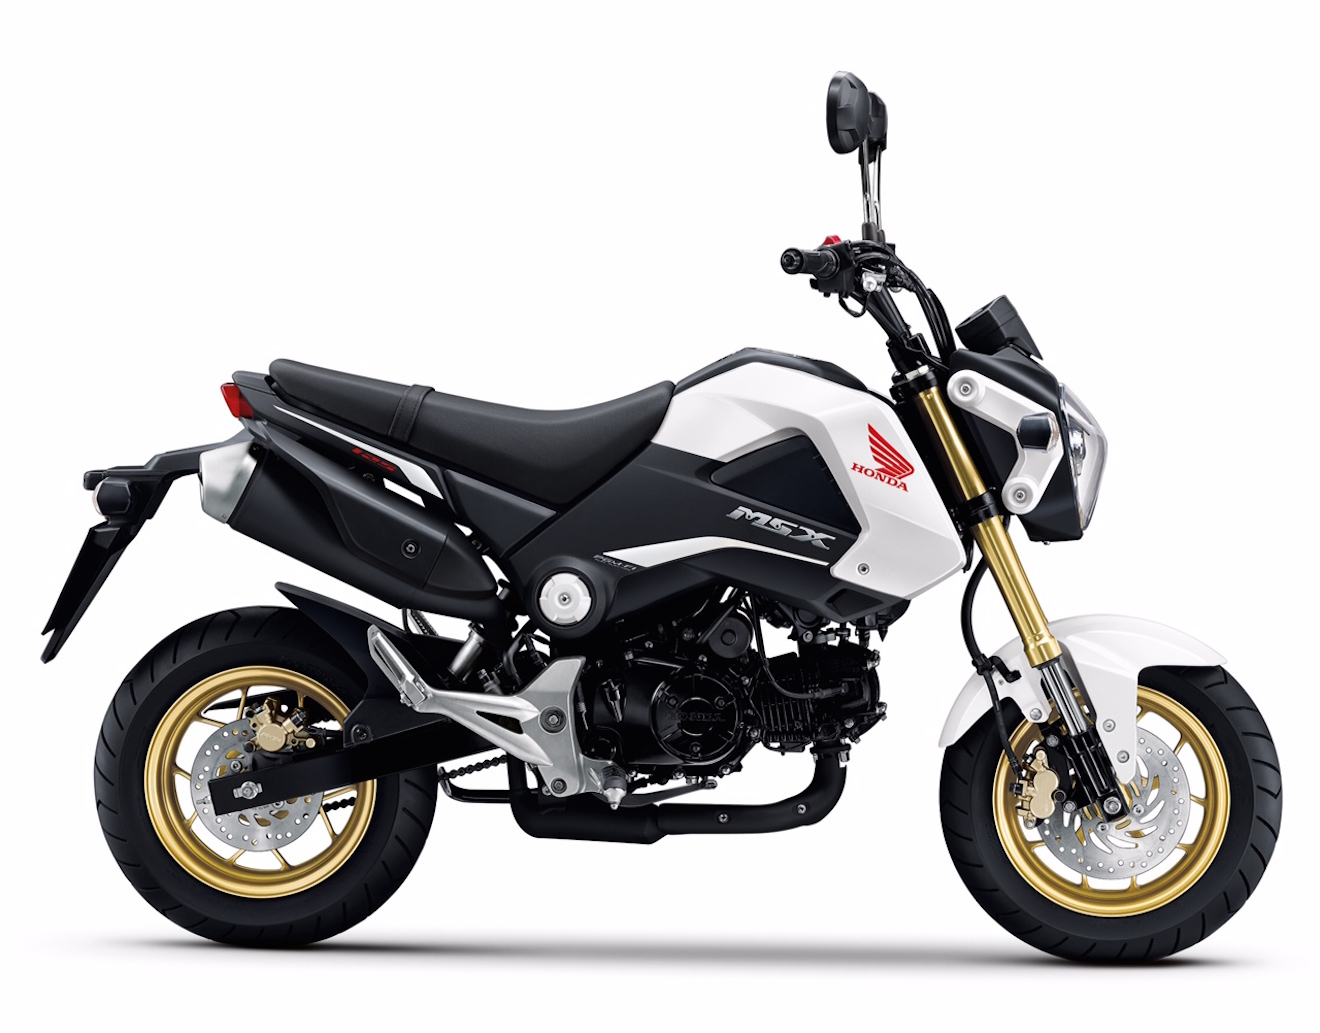 ap honda launches new honda msx125 under clutching my. Black Bedroom Furniture Sets. Home Design Ideas